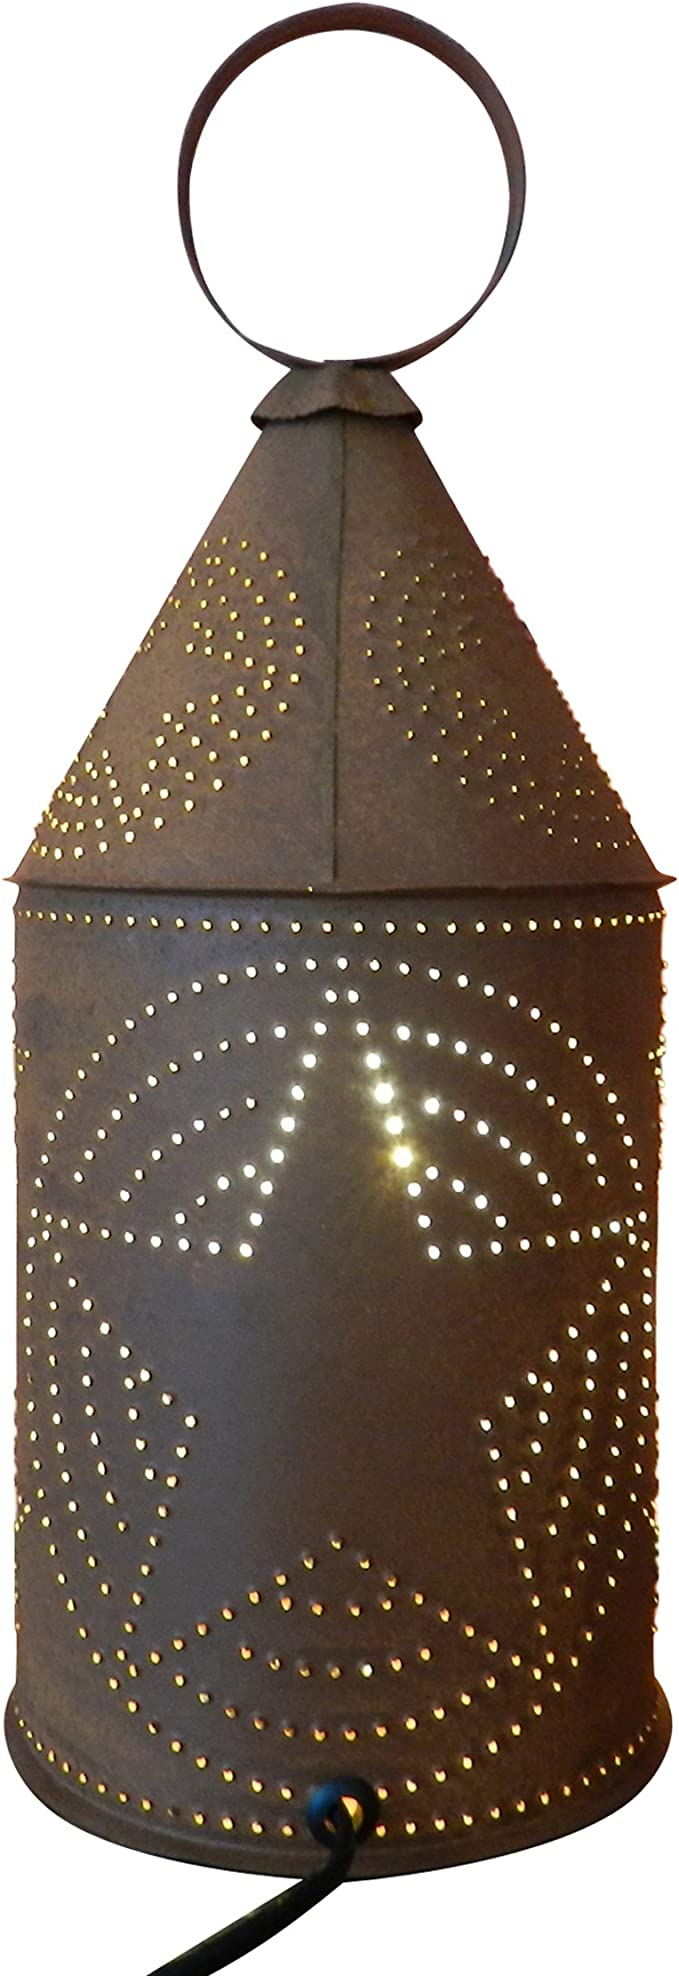 """PRIMITIVE 10/"""" Colonial Punched Tin Lantern in Smokey Black Finish Accent Piece"""